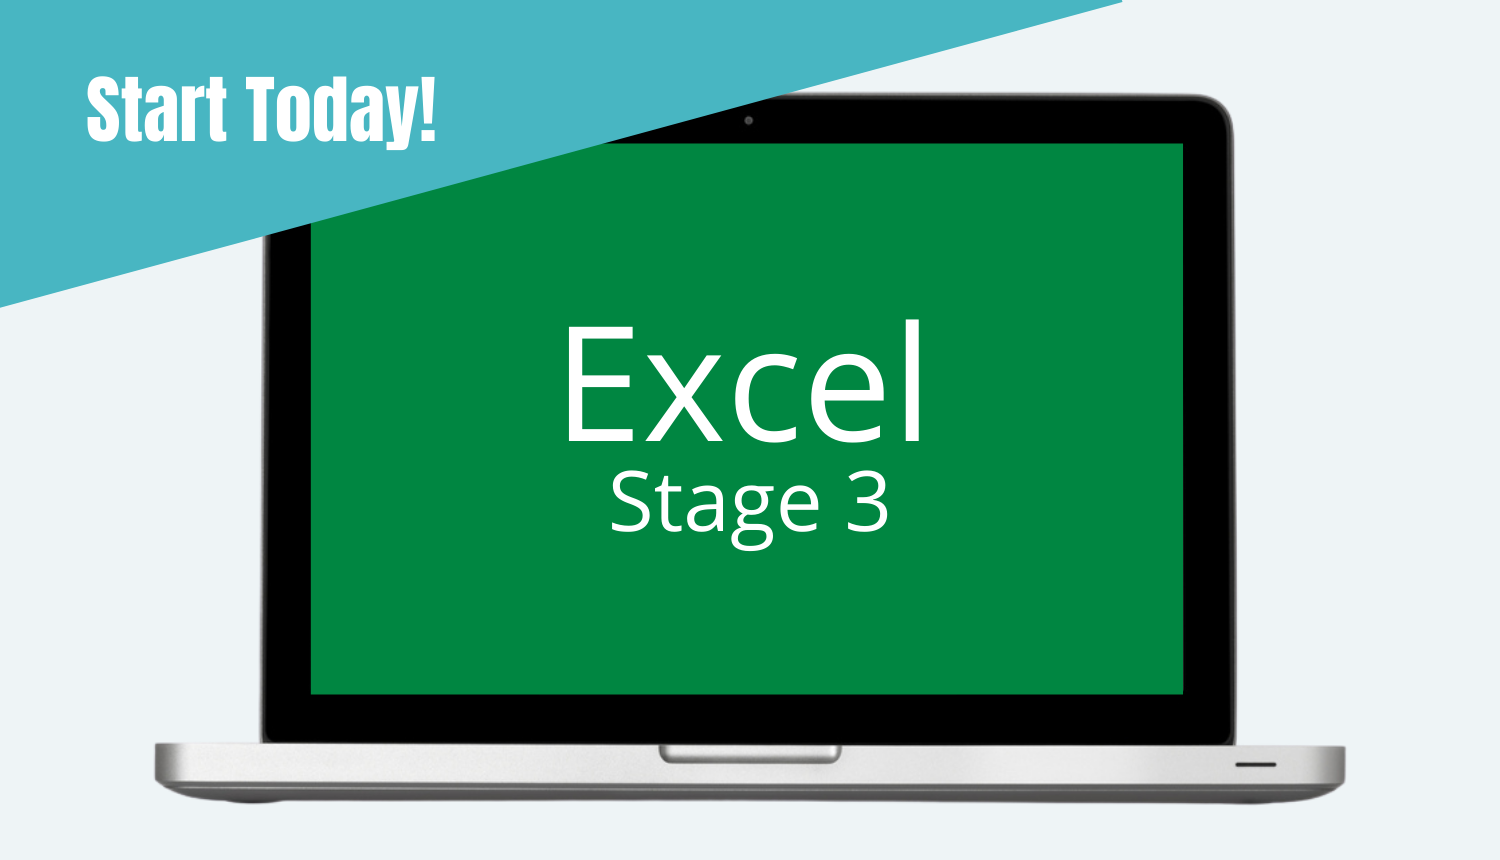 Excel Stage 3 Online Course